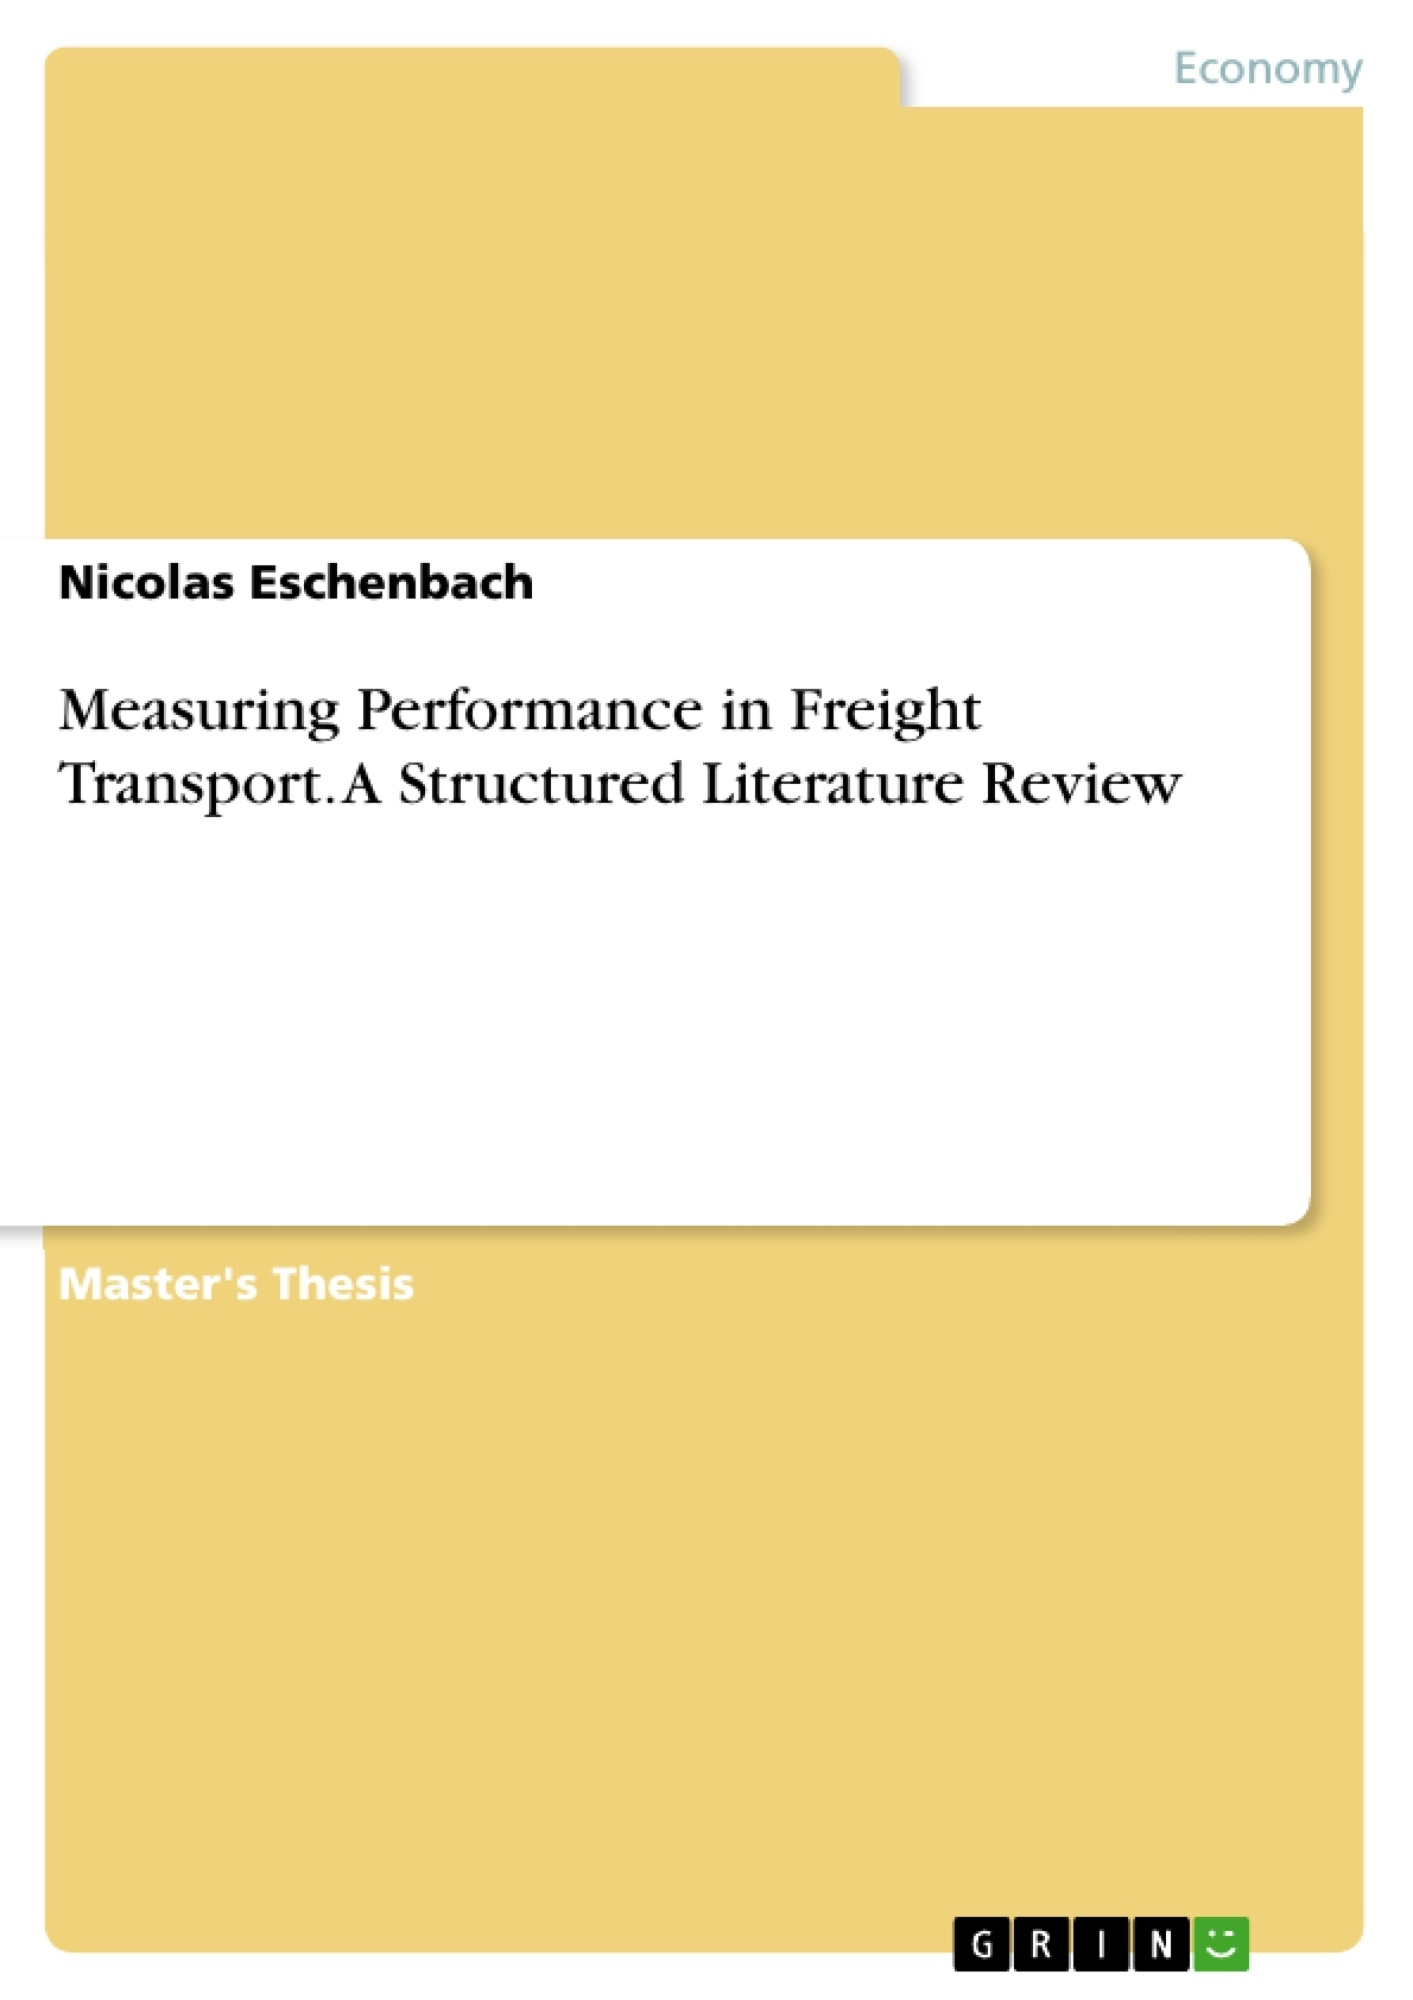 Title: Measuring Performance in Freight Transport. A Structured Literature Review